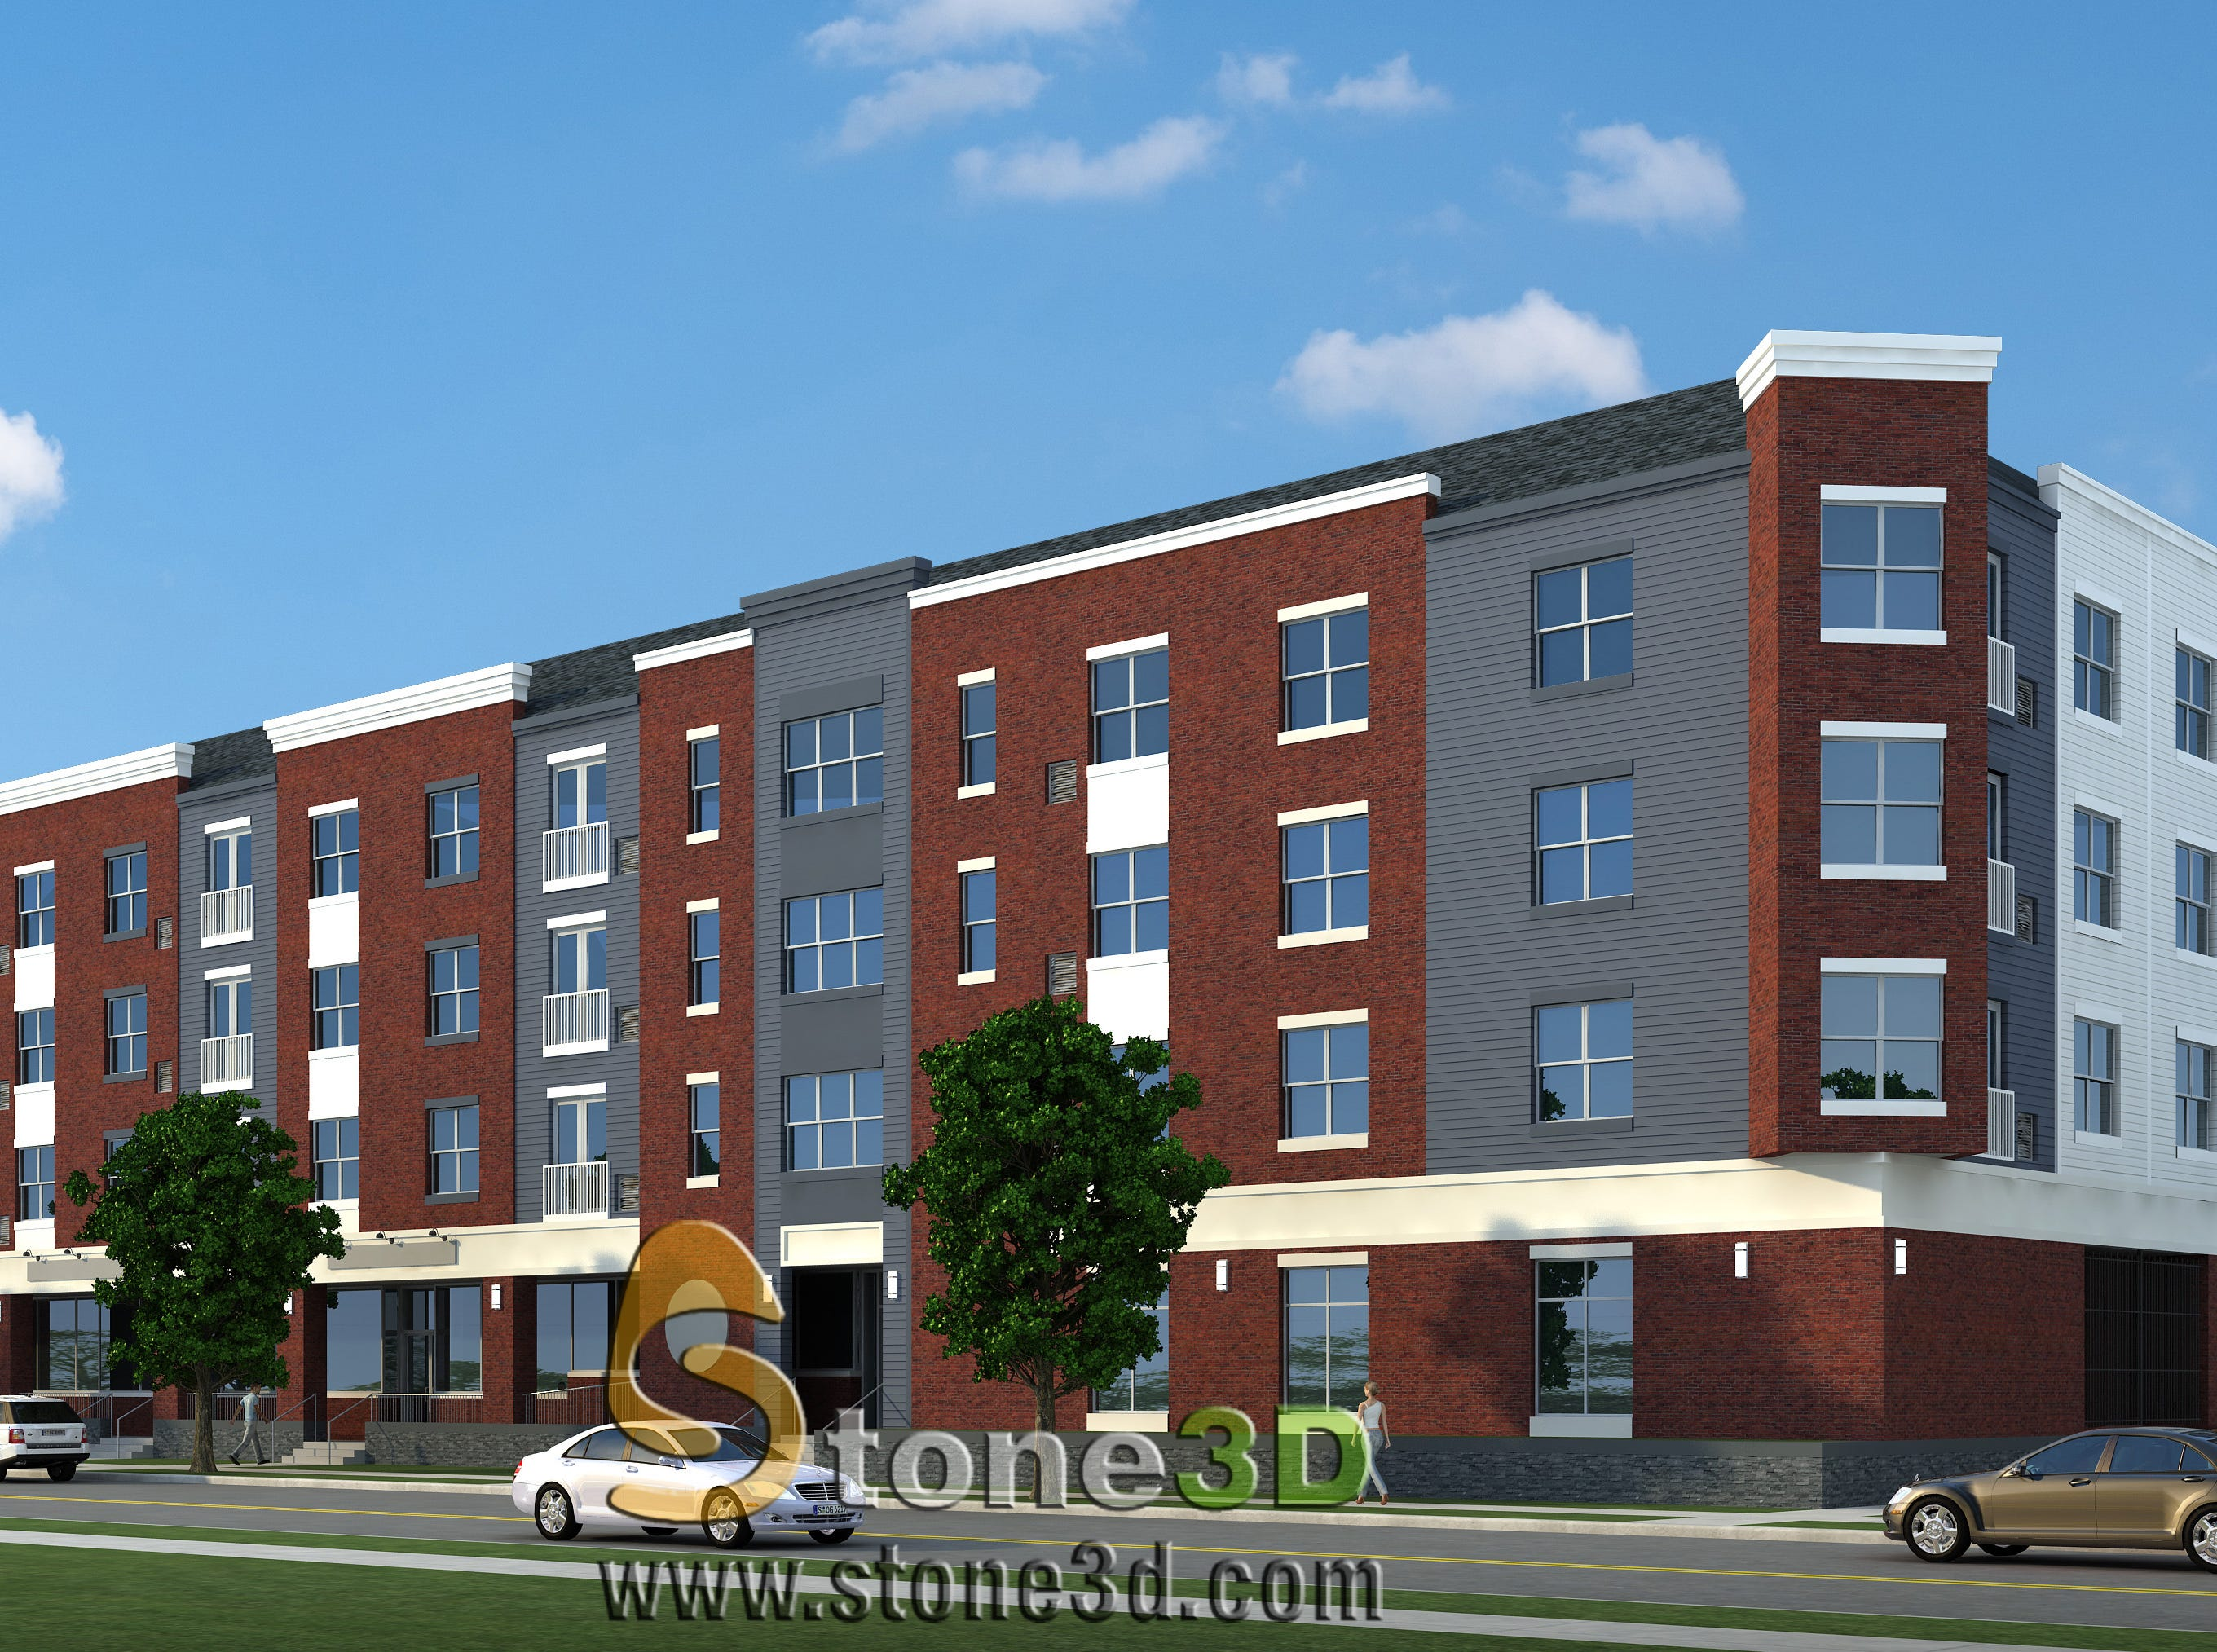 Rendering of 829 South Avenue redevelopment site